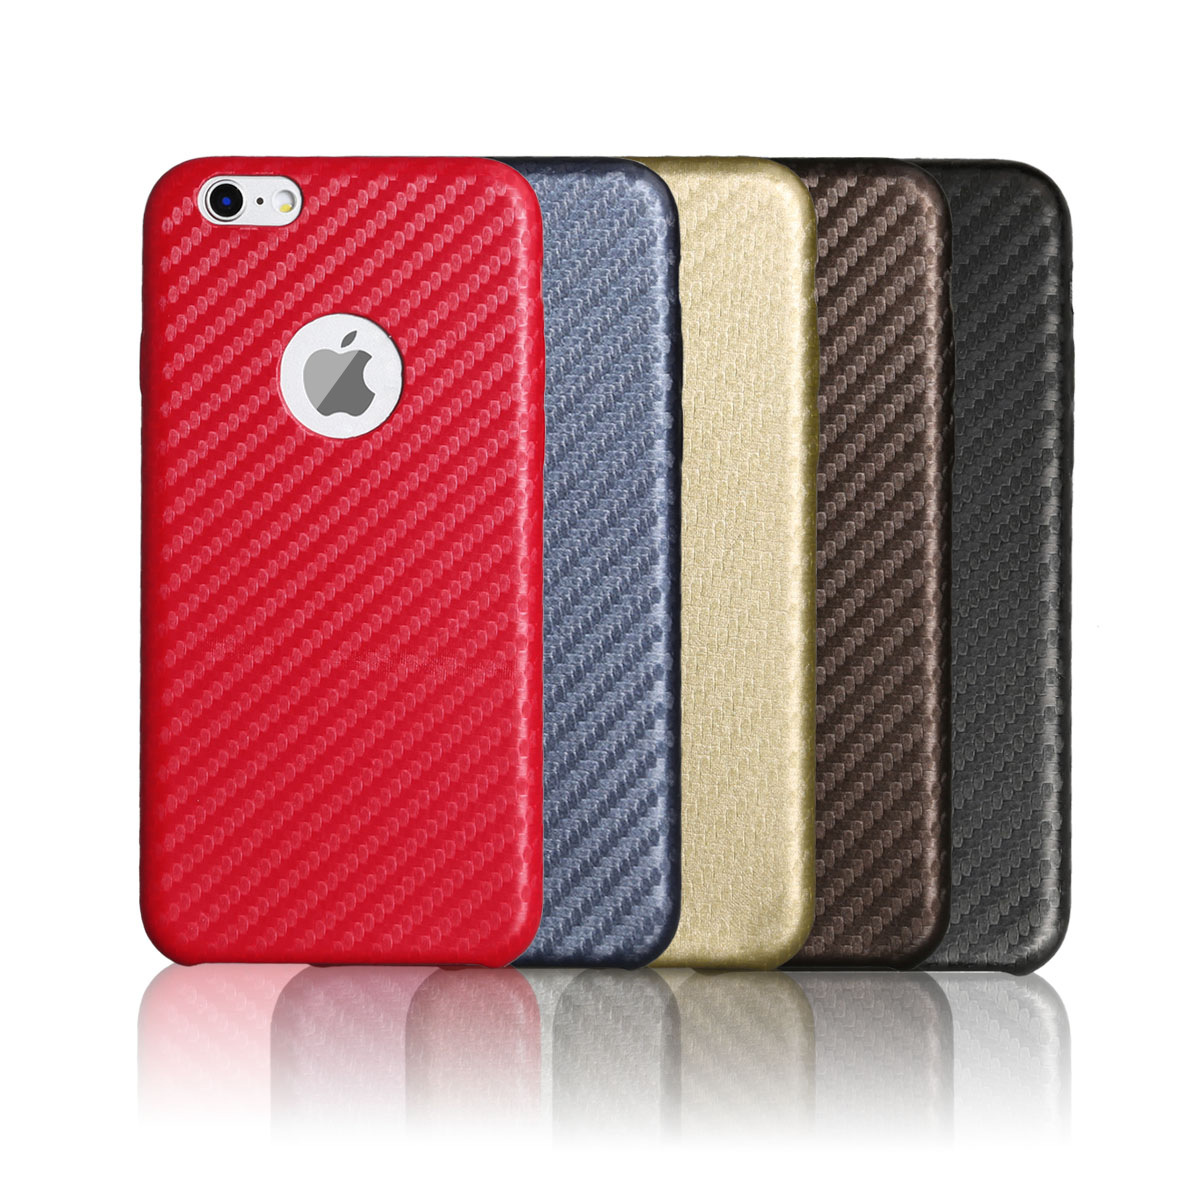 Carbon Fiber Pattern Glossy Matting PU leatherBack Cover Protective Shell Cases Phone Case For iPhone 5/5s/se 6/6s 7/7Plus